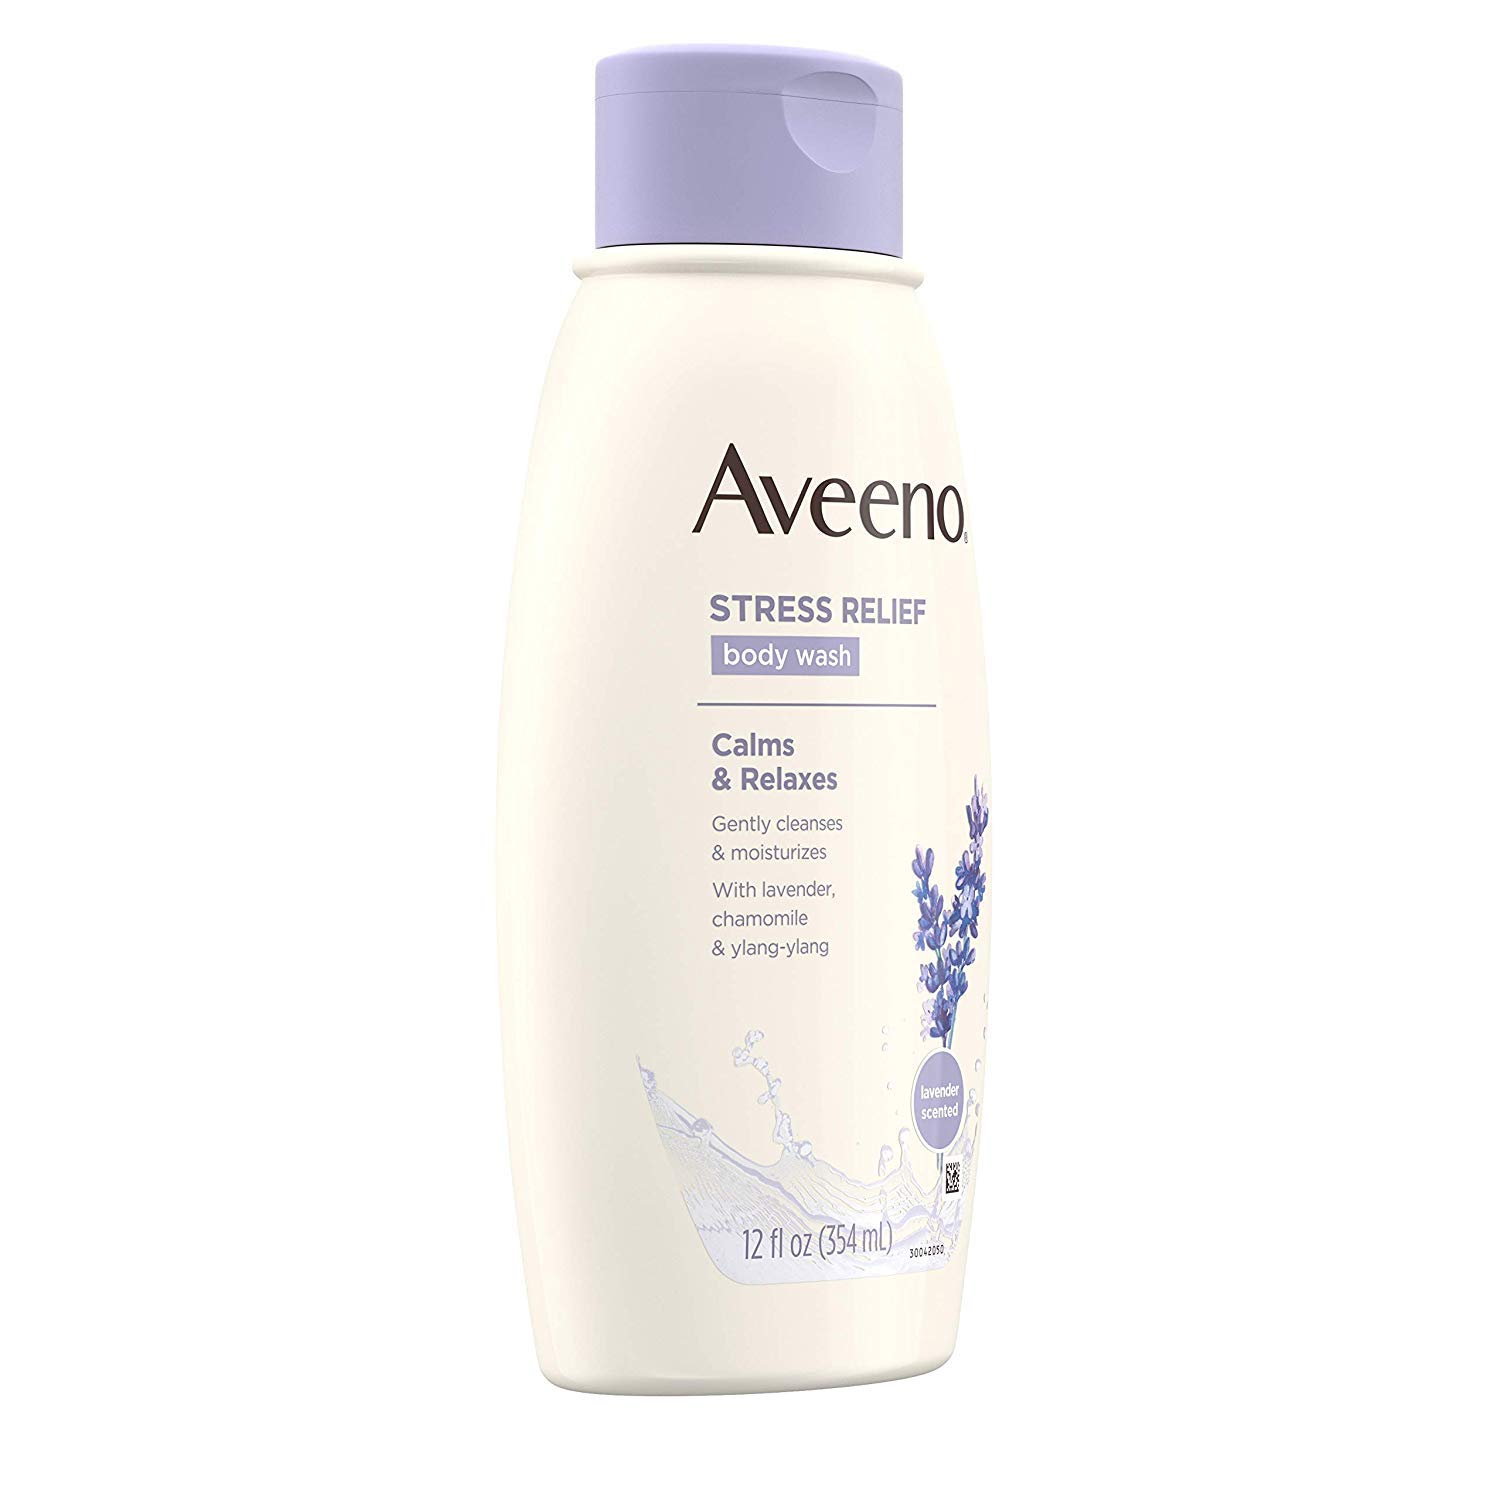 Aveeno Stress Relief Body Wash with Soothing Oat, Lavender, Chamomile Ylang-Ylang Essential Oils, Hypoallergenic, Dye-Free Soap-Free Calming Body Wash gentle on Sensitive Skin, 12 fl. oz 5 Pack